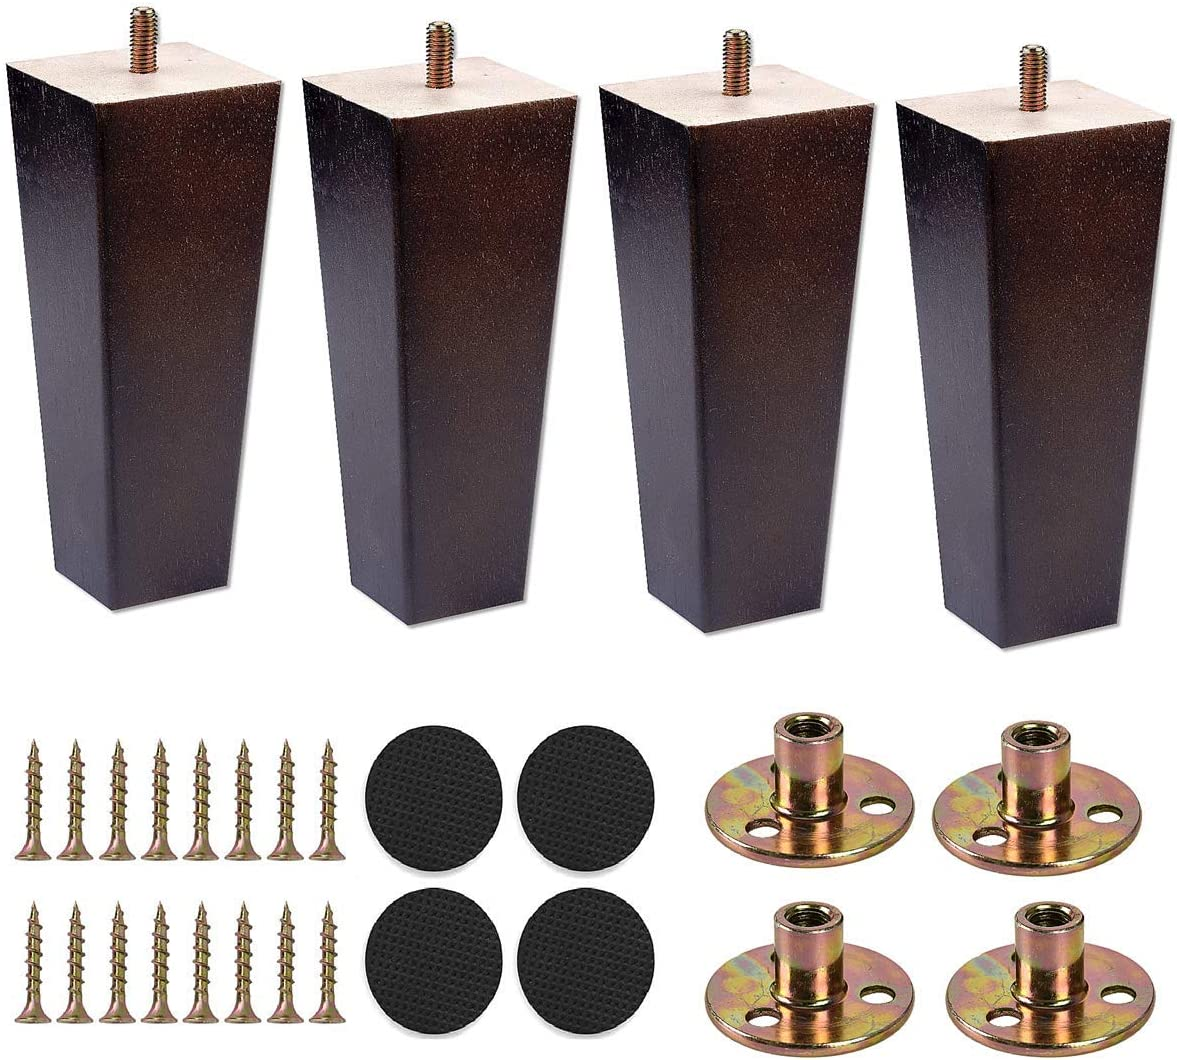 Sangle Sopffy 4Pcs Wooden Furniture Legs 6 inch Vintage Couch Hardware Accessaries Great Sofa Replacement Legs for Armchair Recliner Coffee Table Dresser Bed,Brown (Square)